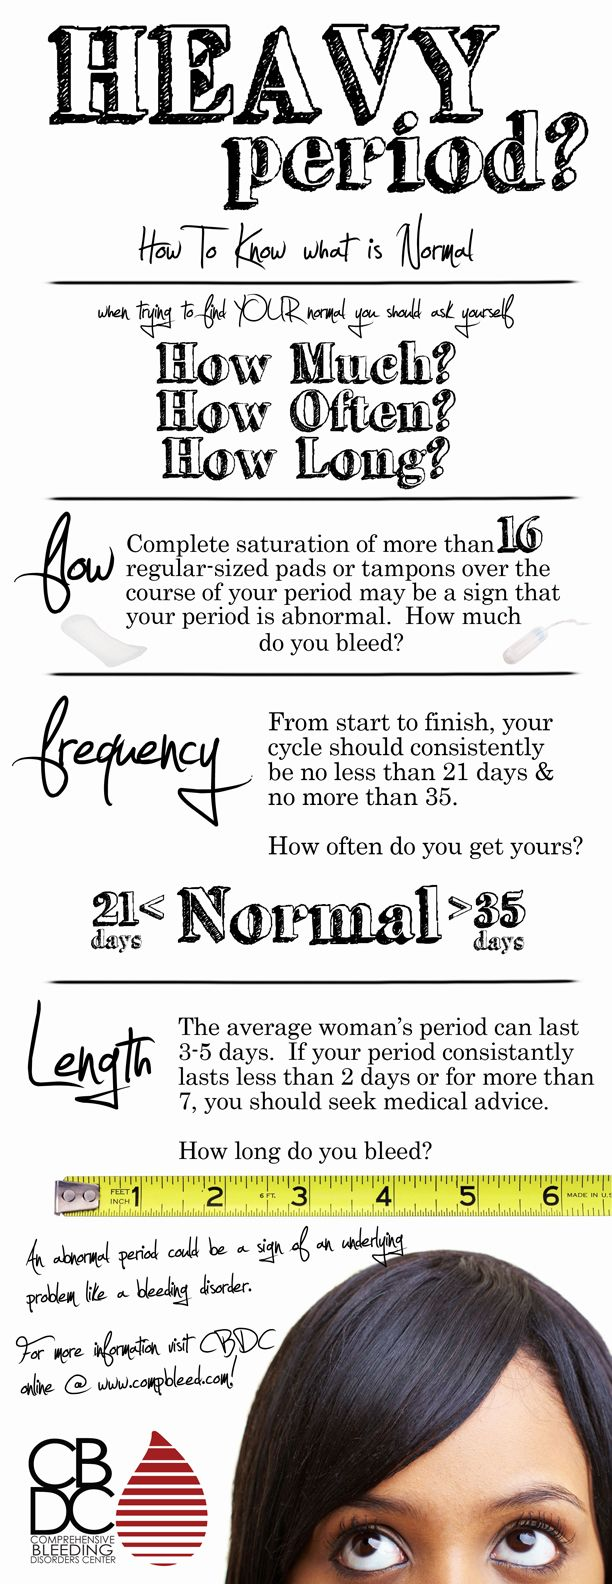 HEAVY PERIOD?  How to know what is normal...because an abnormal period could be…